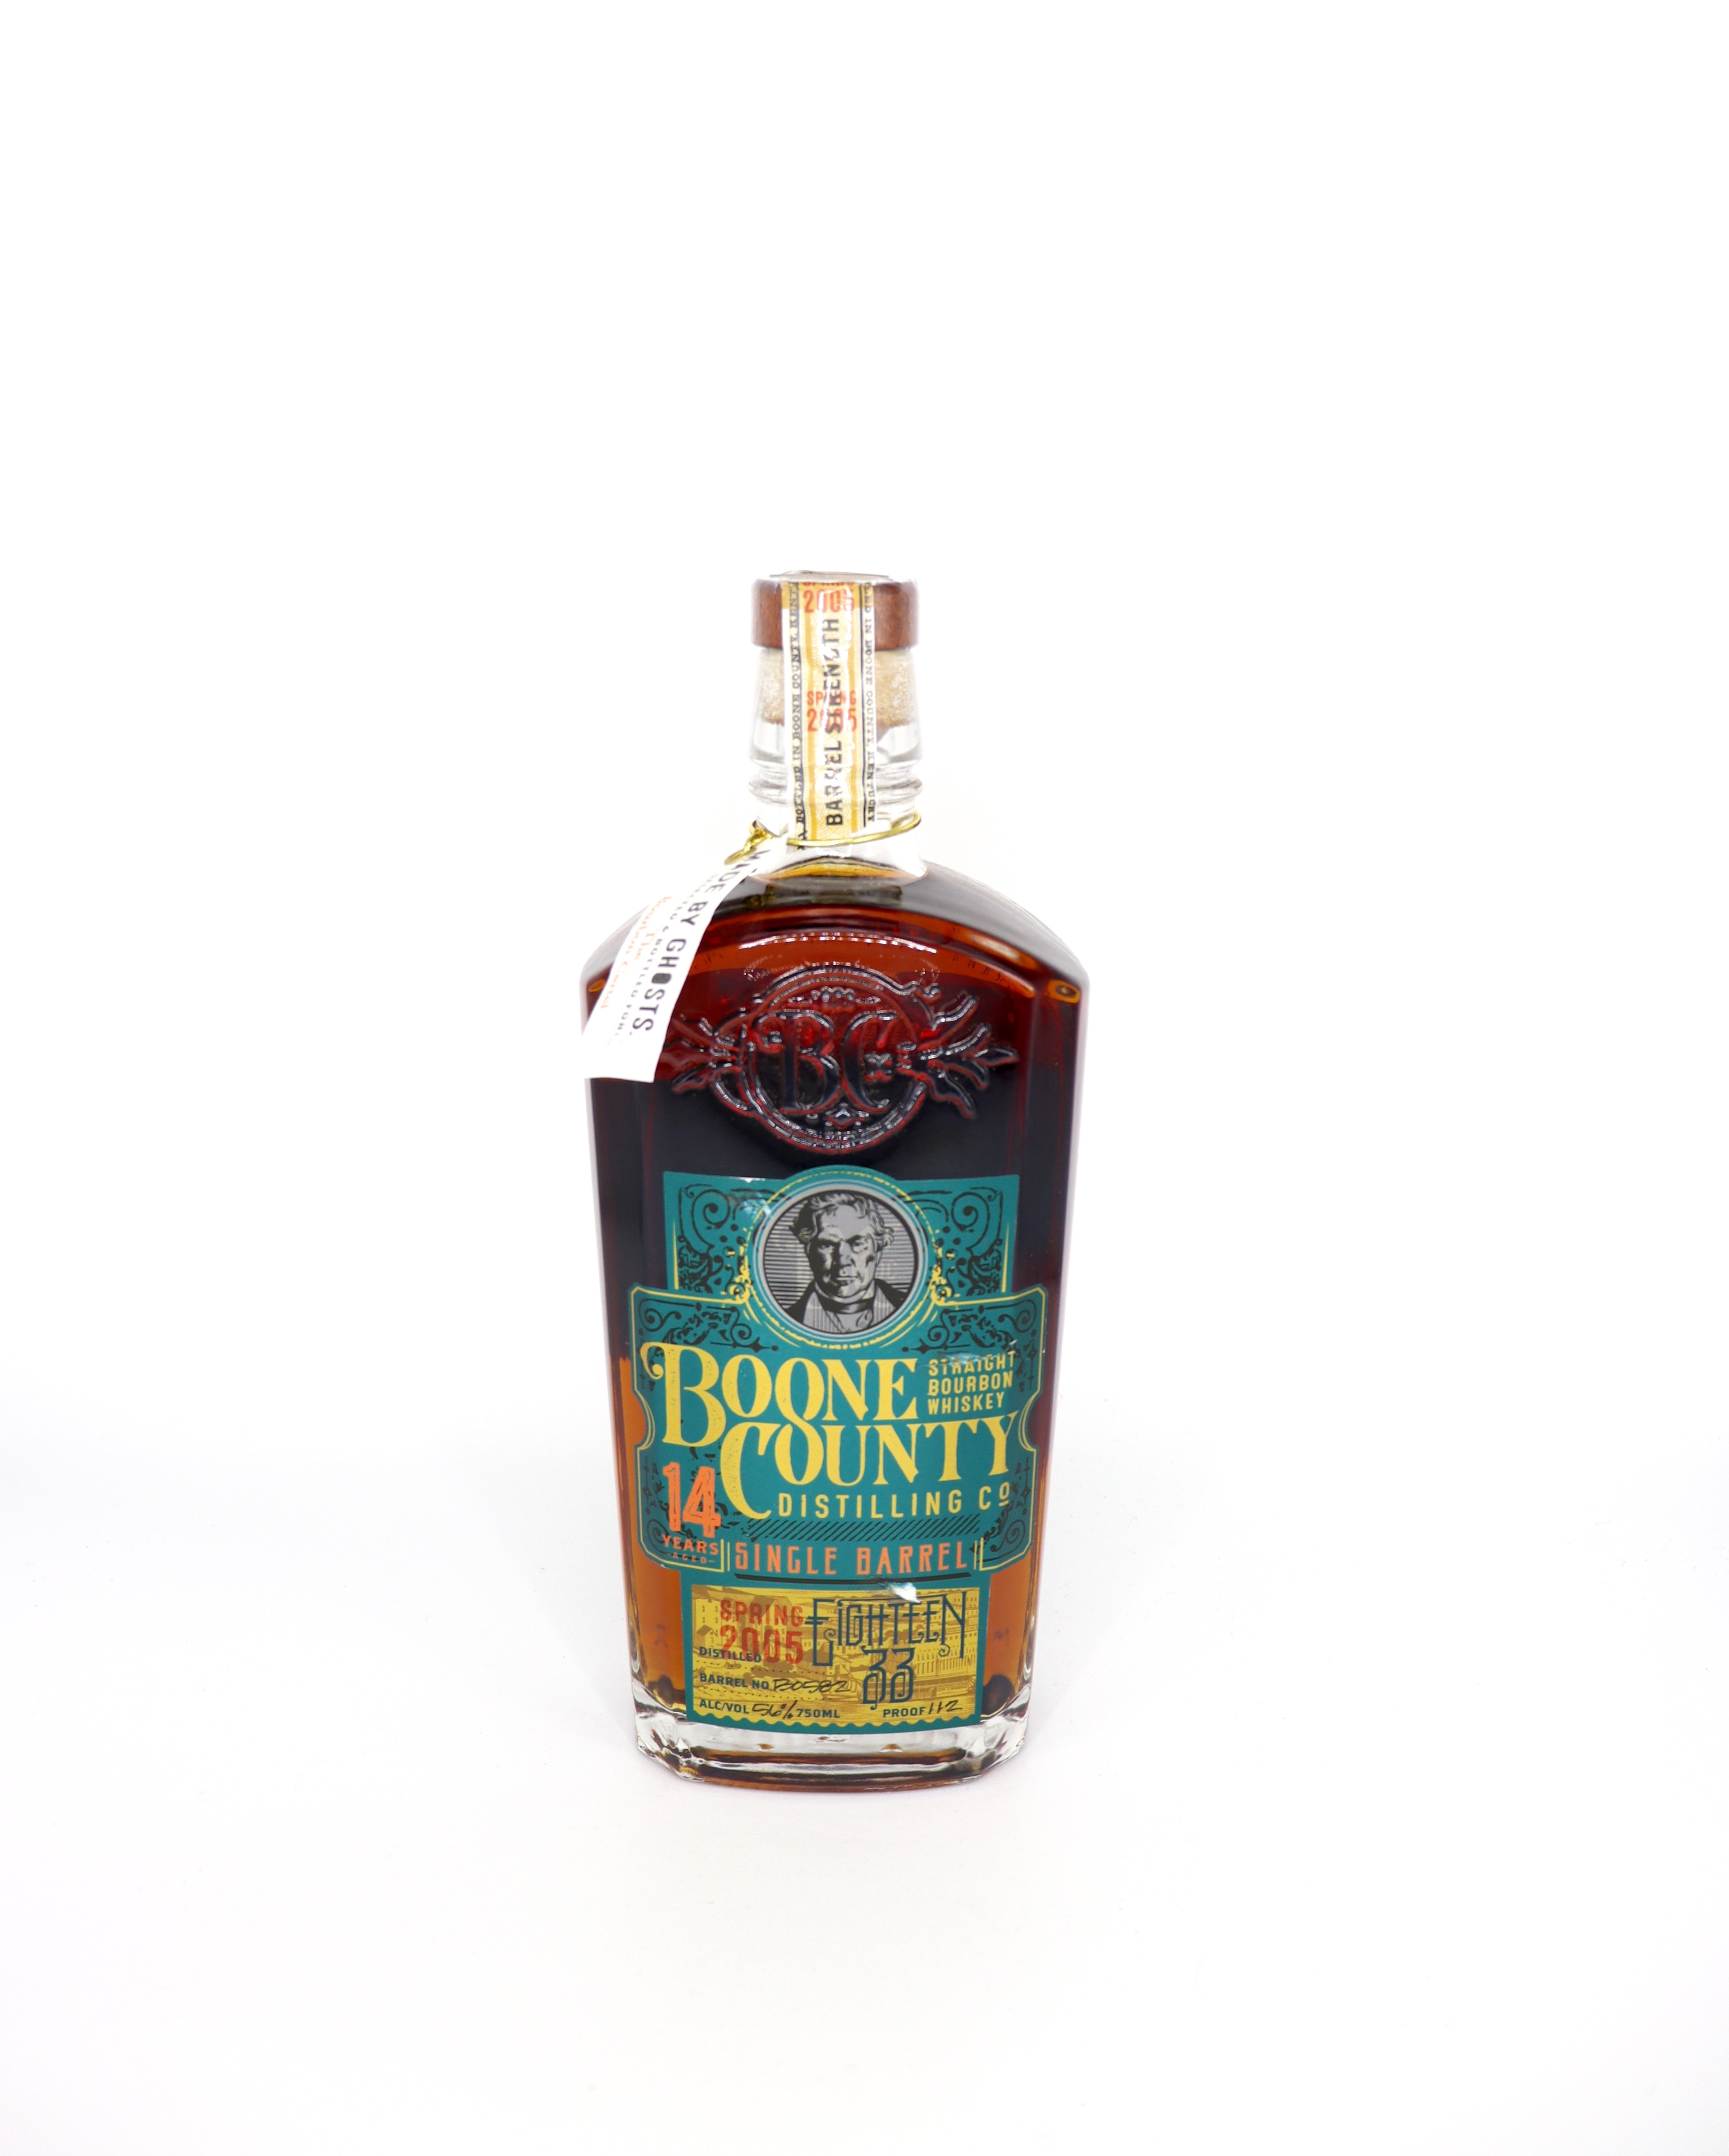 Boone County 14 Year old Single Barrel Barrel strenght Bourbon The Bourbon Central Bottling